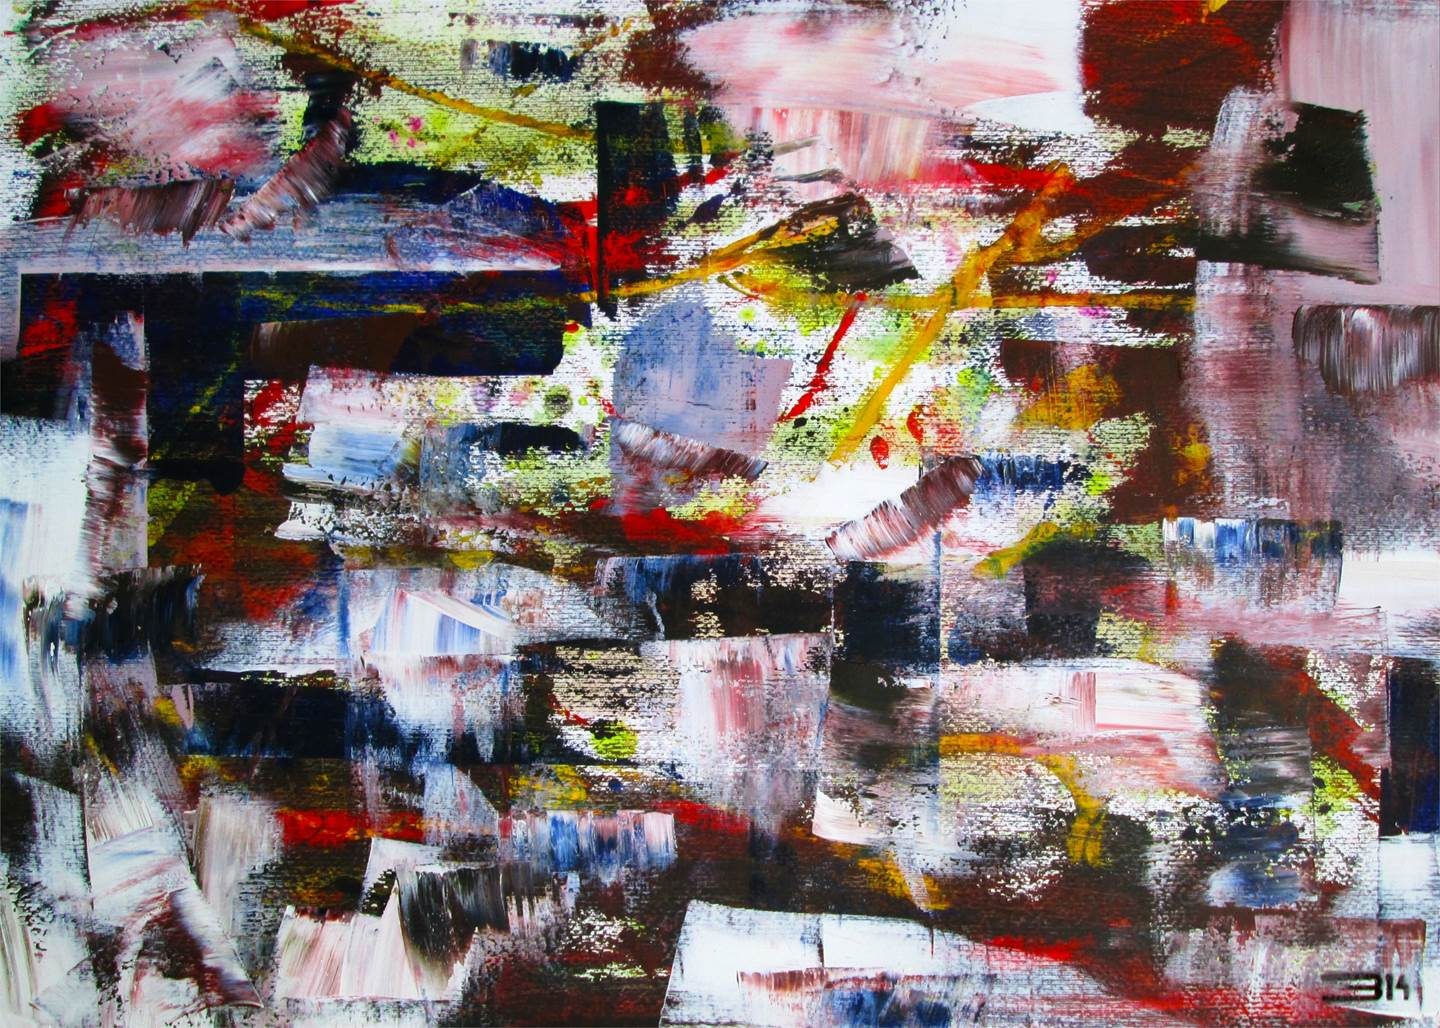 Untitled, original Abstract Acrylic Painting by Eduardo Bessa